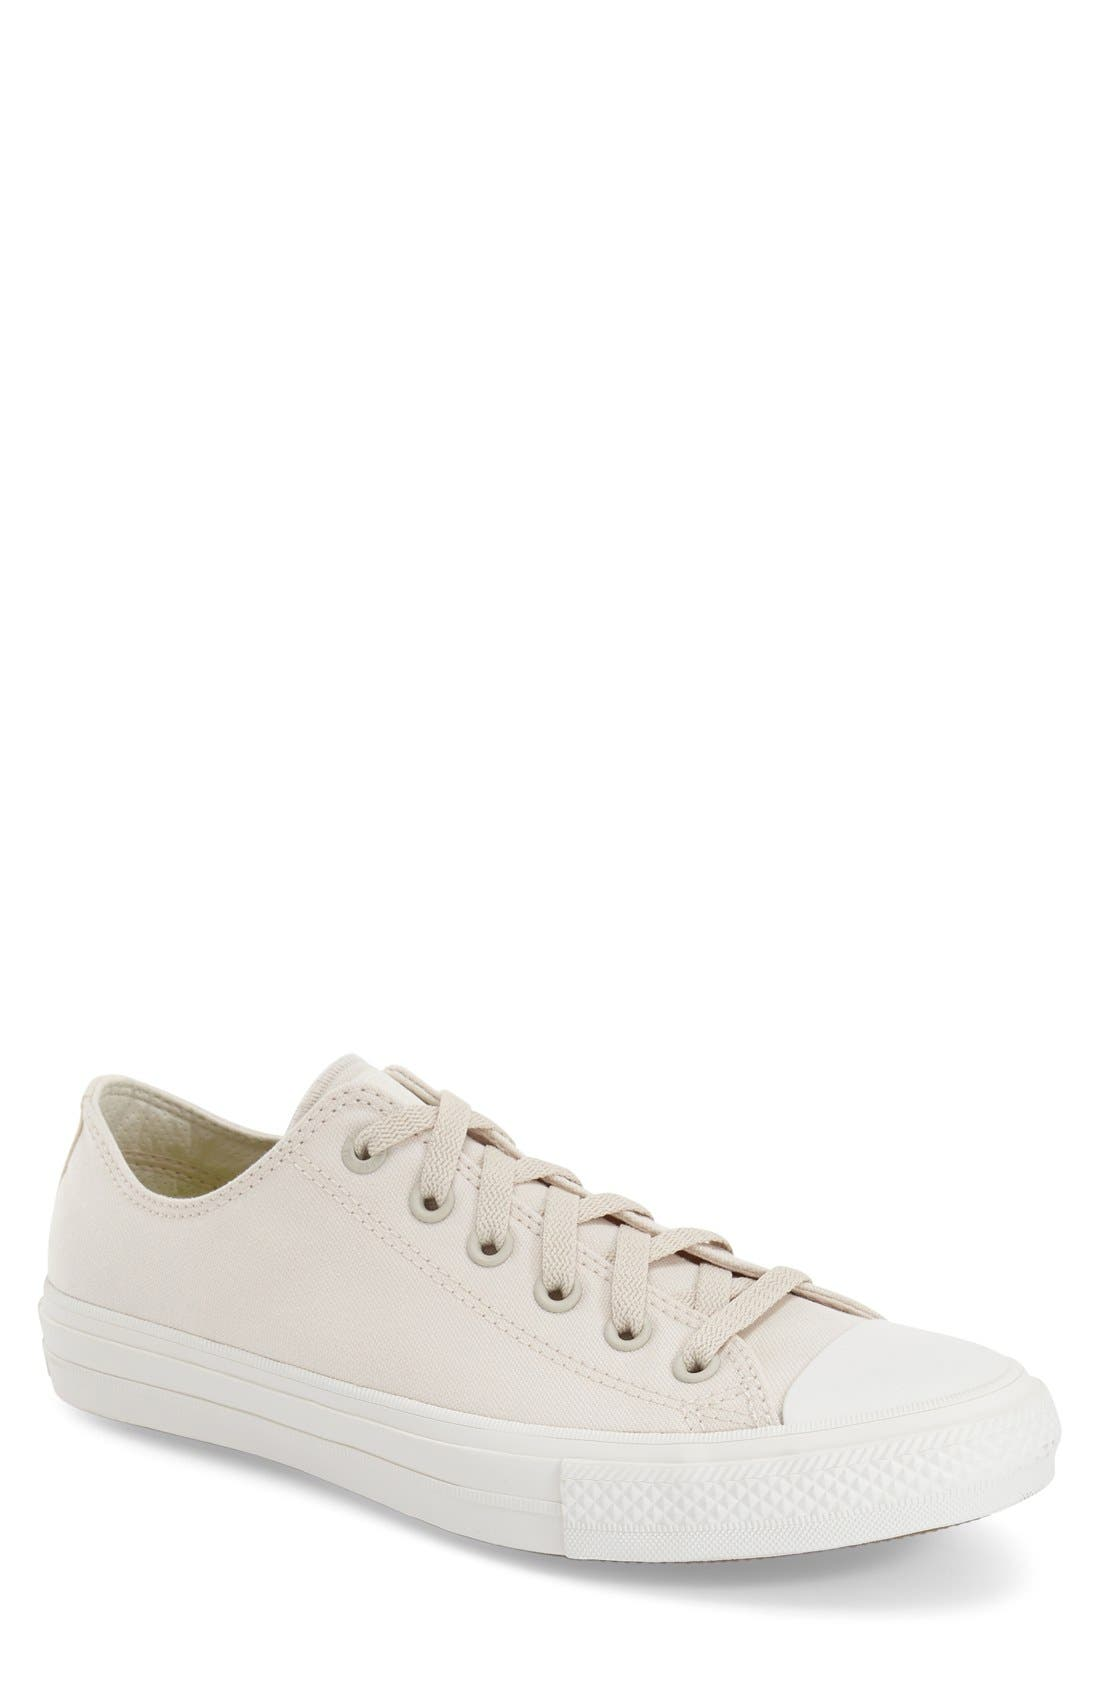 Chuck Taylor<sup>®</sup> All Star<sup>®</sup> II 'Ox' Canvas Sneaker,                             Main thumbnail 11, color,